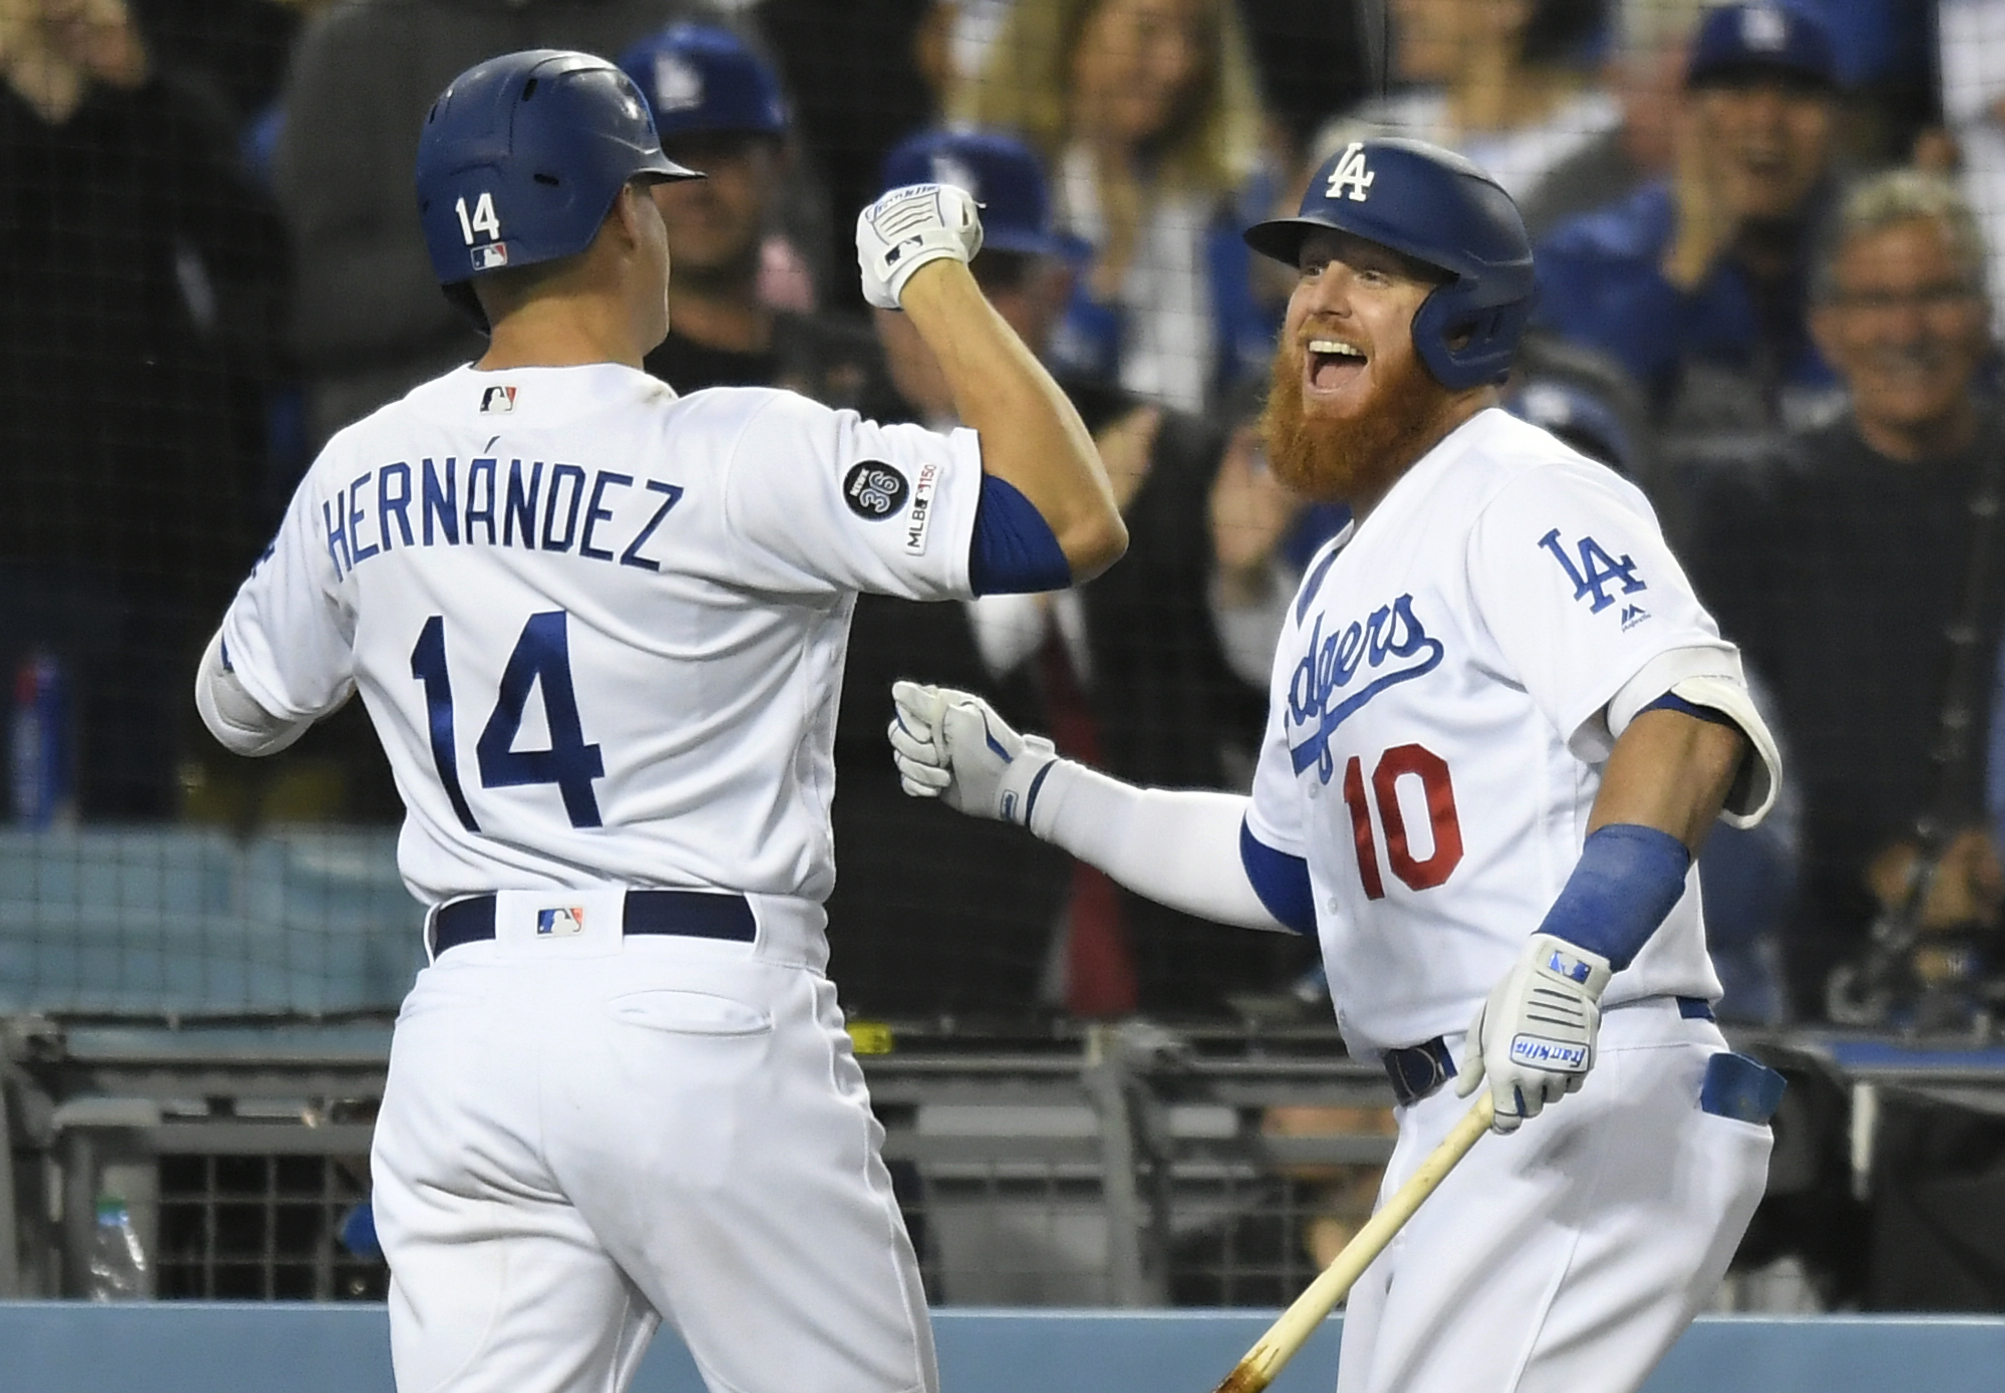 Justin Turner congratulates Enrique Hernandez of the Los Angeles Dodgers on his grand slam home run against the San Francisco Giants in the seventh inning at Dodger Stadium on June 18, 2019. (Credit: John McCoy/Getty Images)